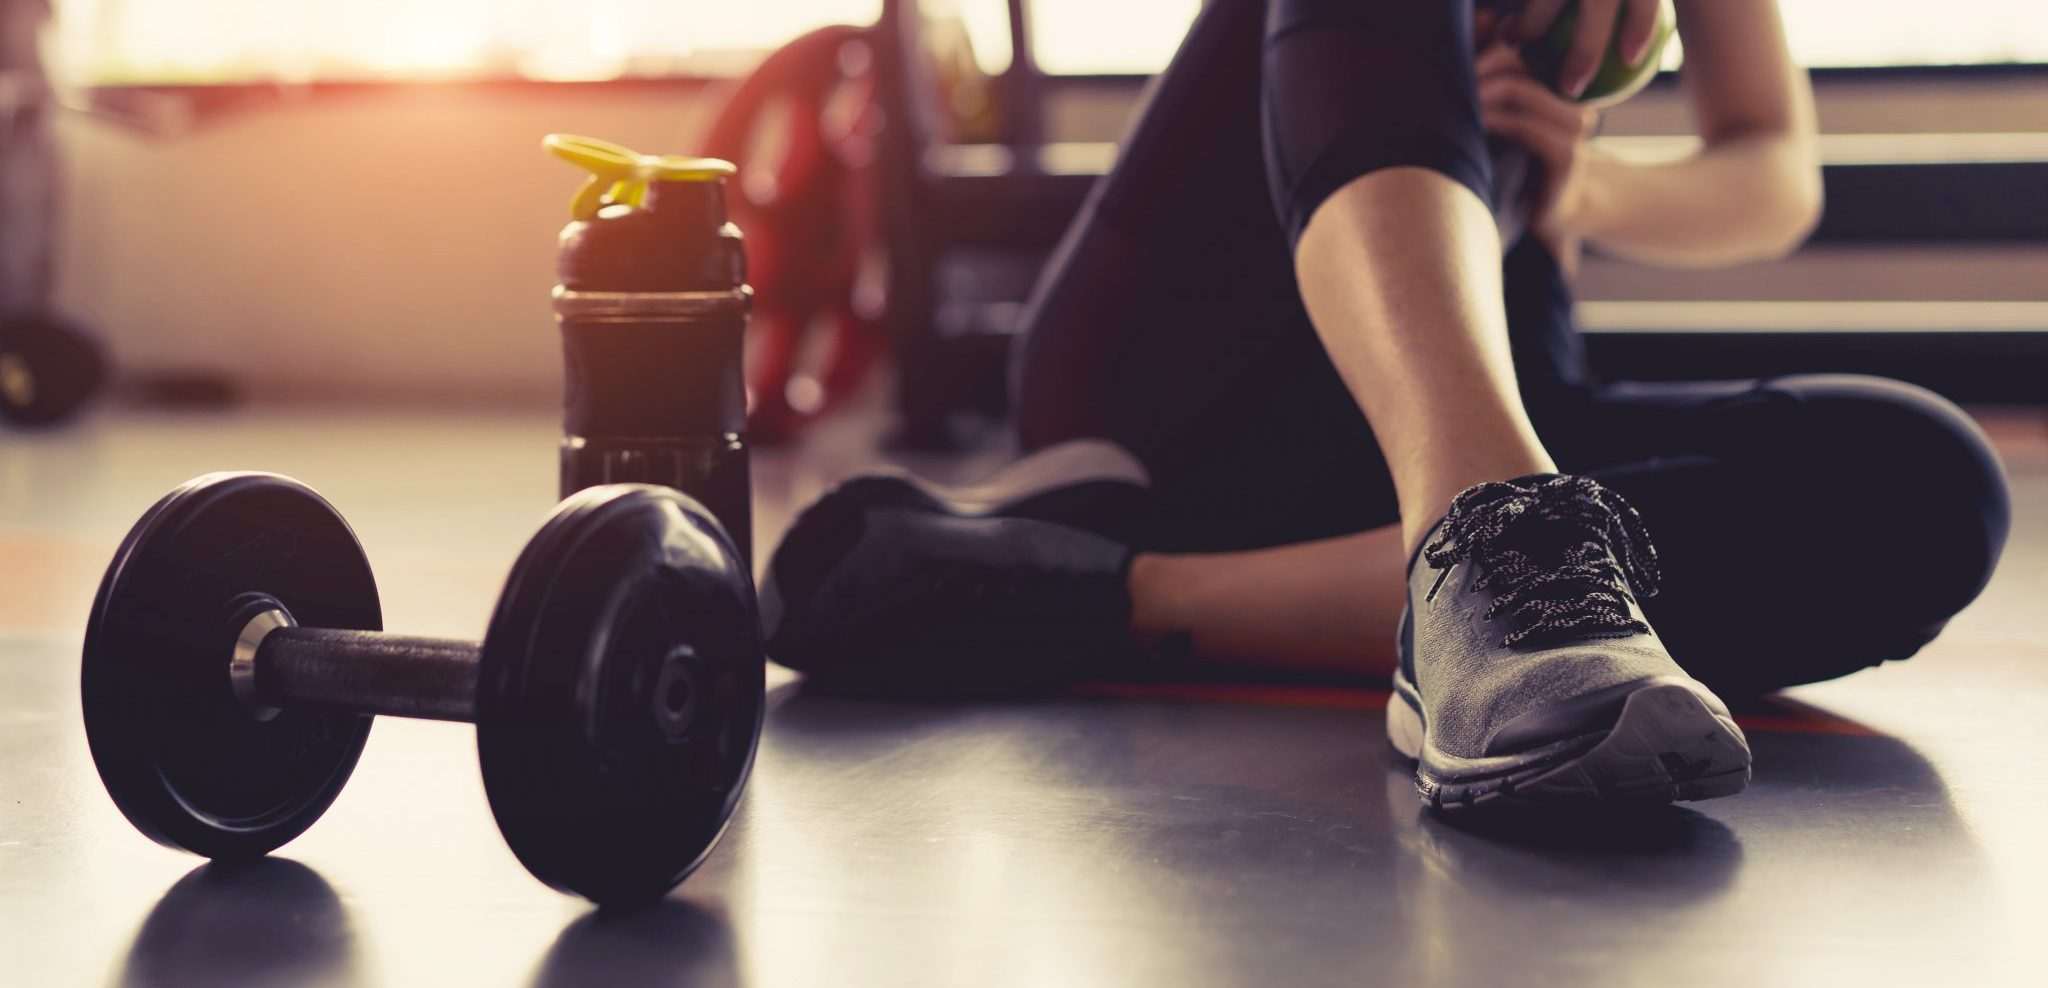 Which Is Better for Weight Loss––Cardio or Weight Training?